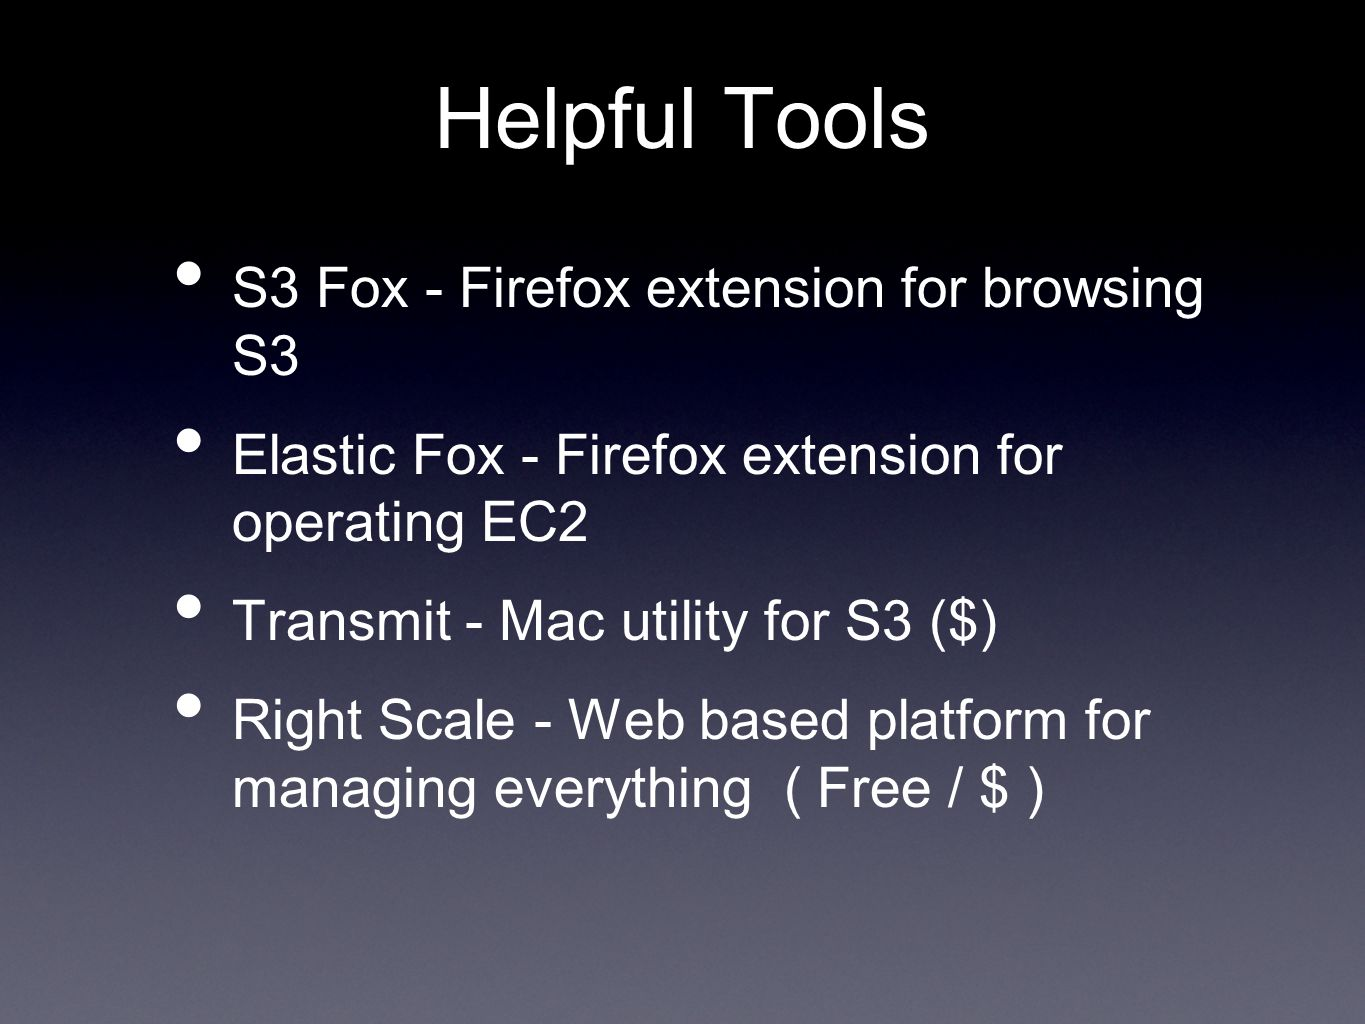 Helpful Tools S3 Fox - Firefox extension for browsing S3 Elastic Fox - Firefox extension for operating EC2 Transmit - Mac utility for S3 ($) Right Scale - Web based platform for managing everything ( Free / $ )